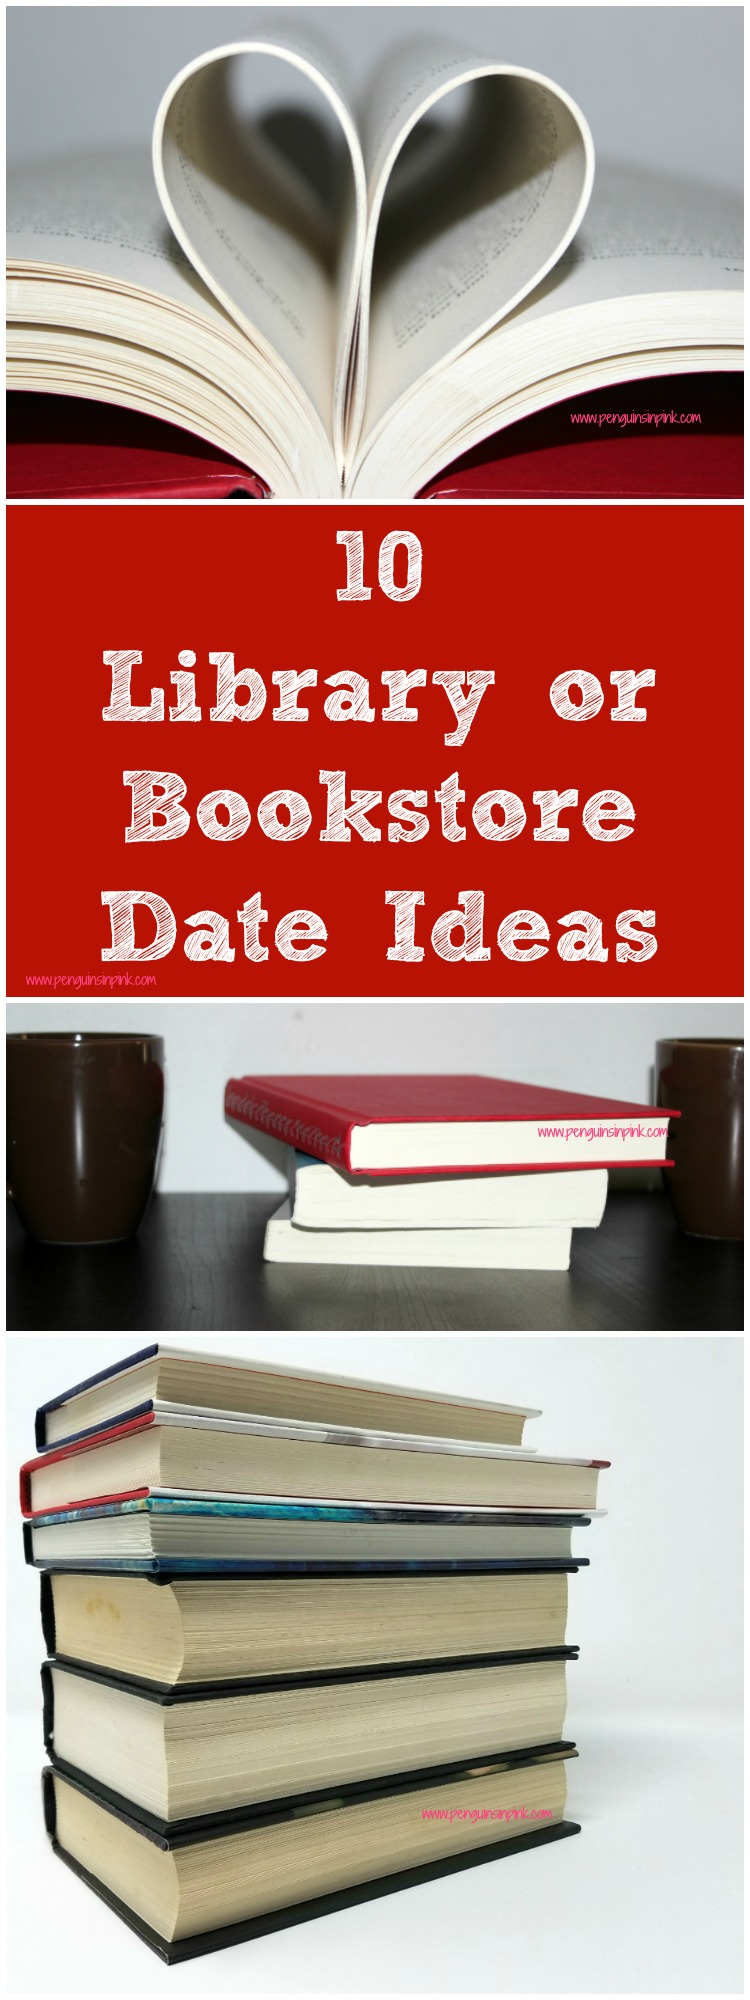 10 Library or Bookstore Date Ideas - 10 inexpensive and fun date ideas for booklovers. Enjoy a great time of browsing books together, learning something new, finding each other's names in book titles and many more.